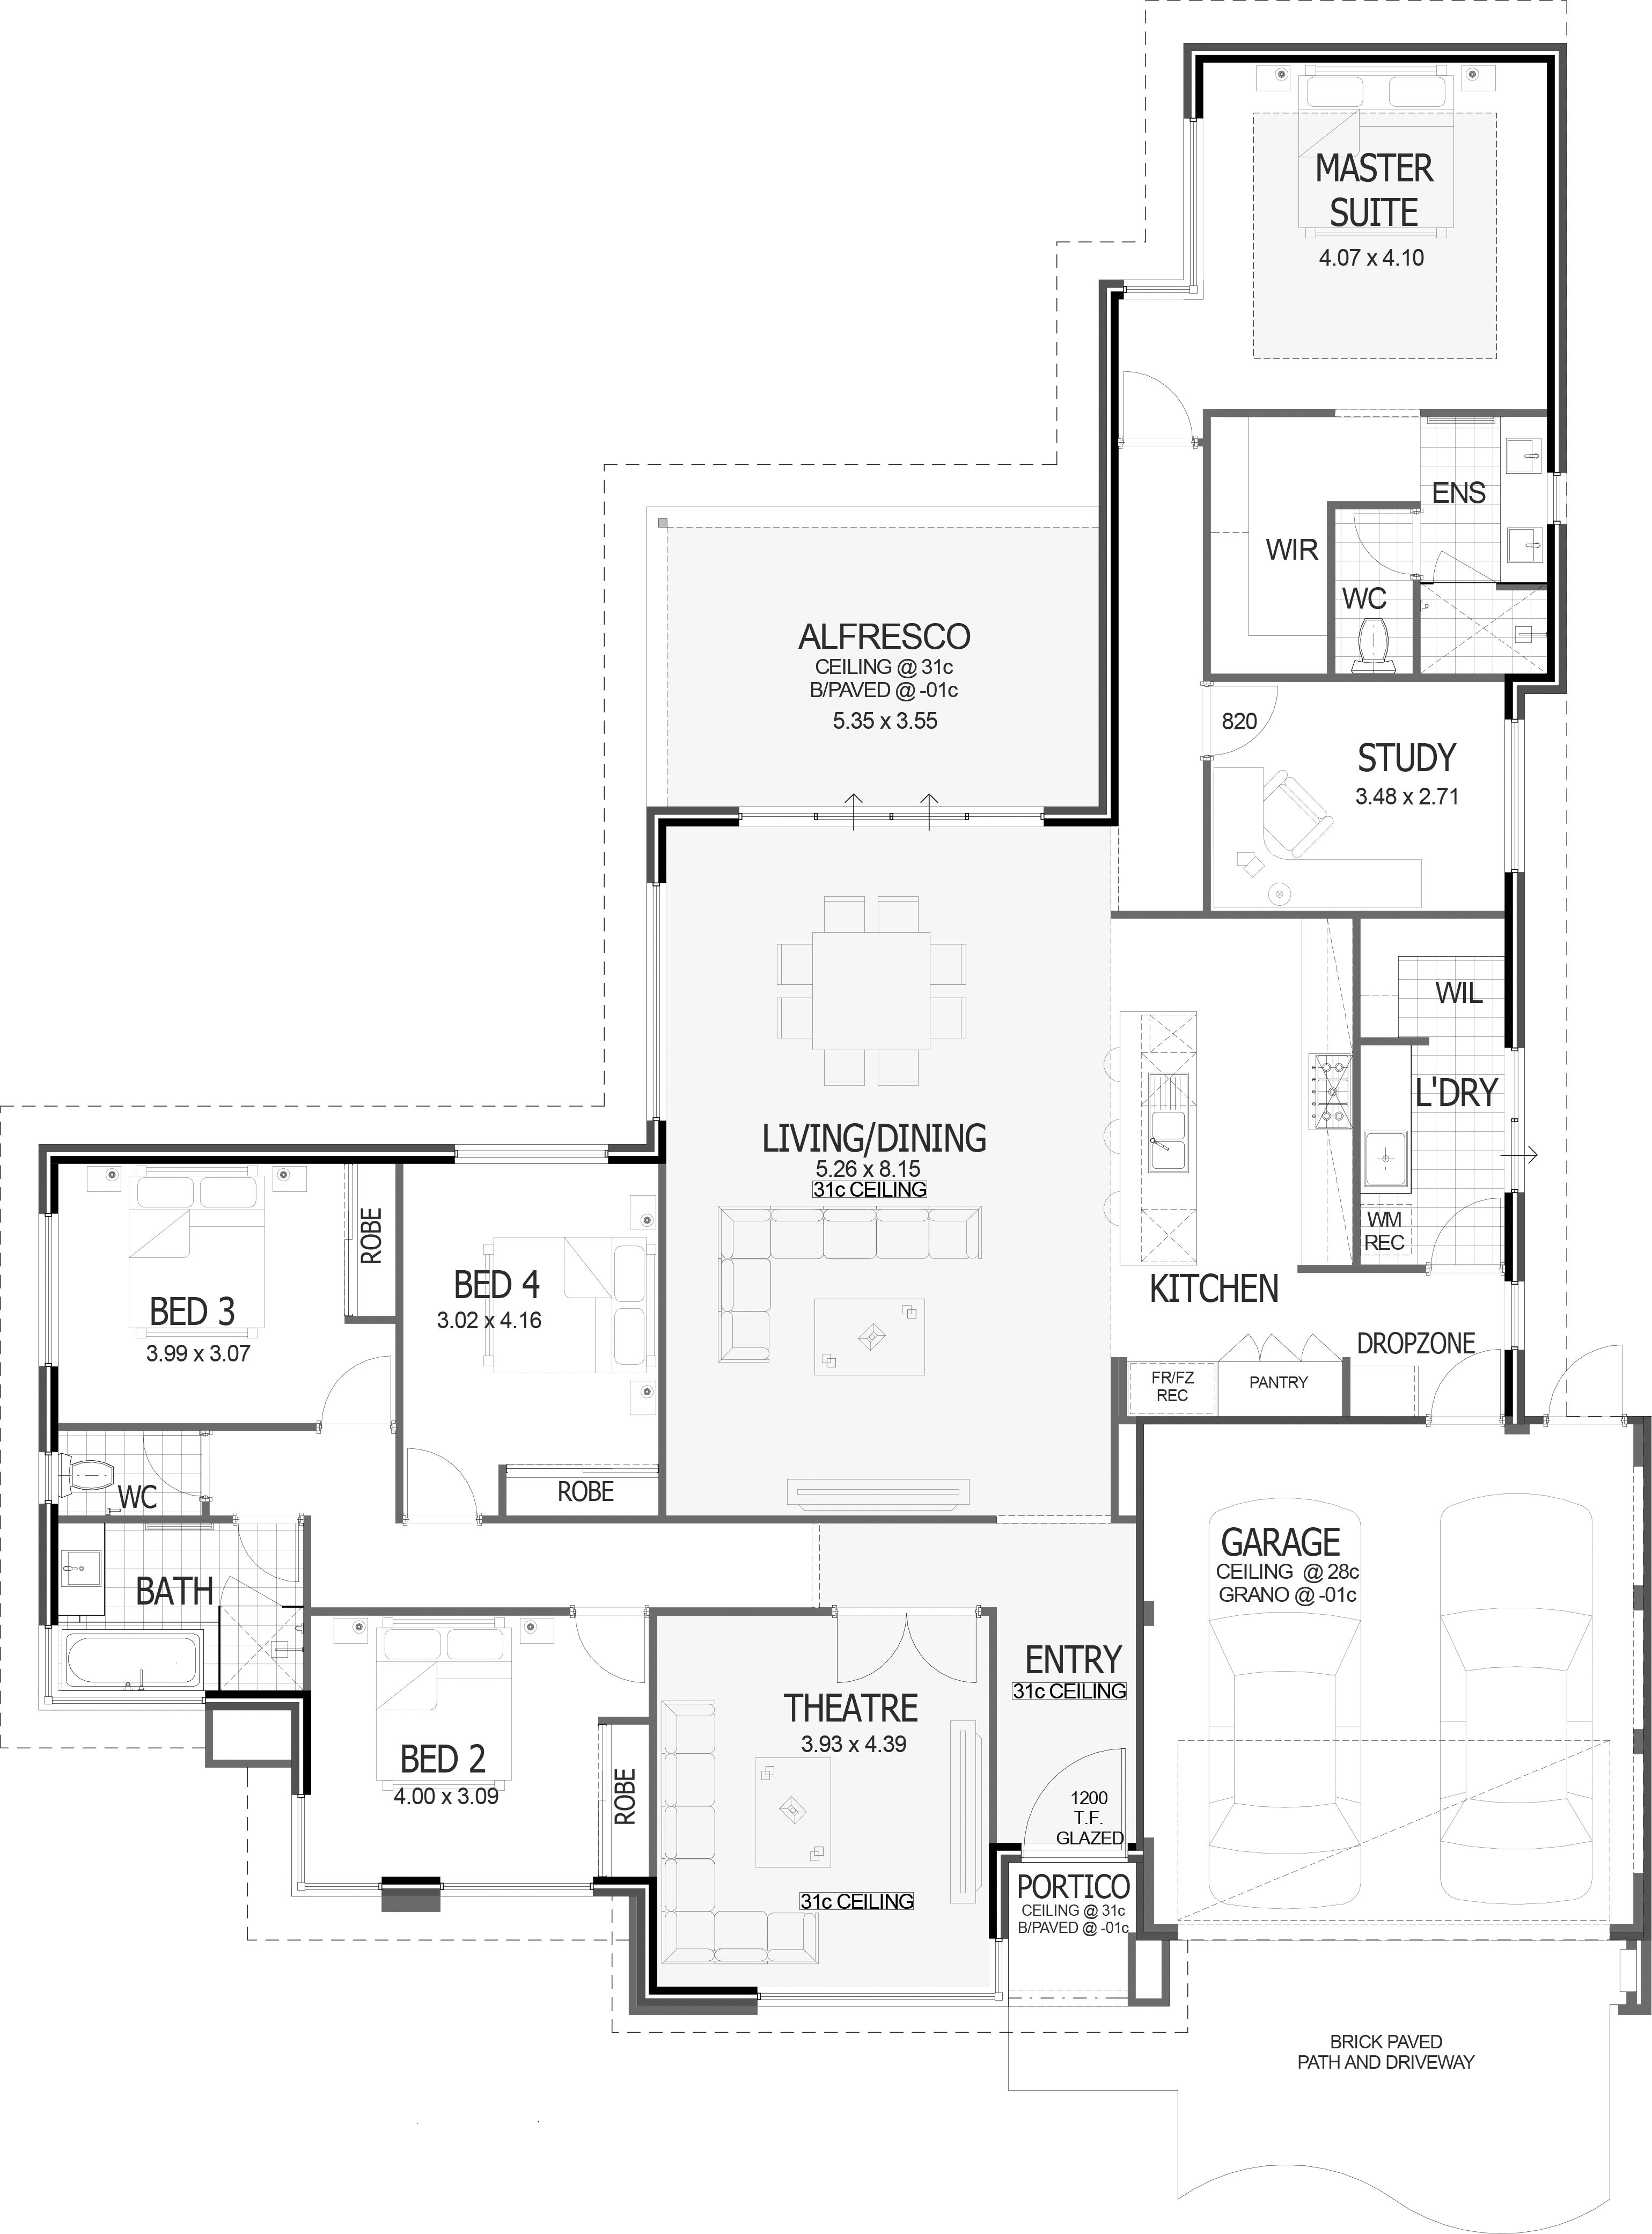 Special House And Land Bushmead French House Plans French Country House Plans Florida House Plans